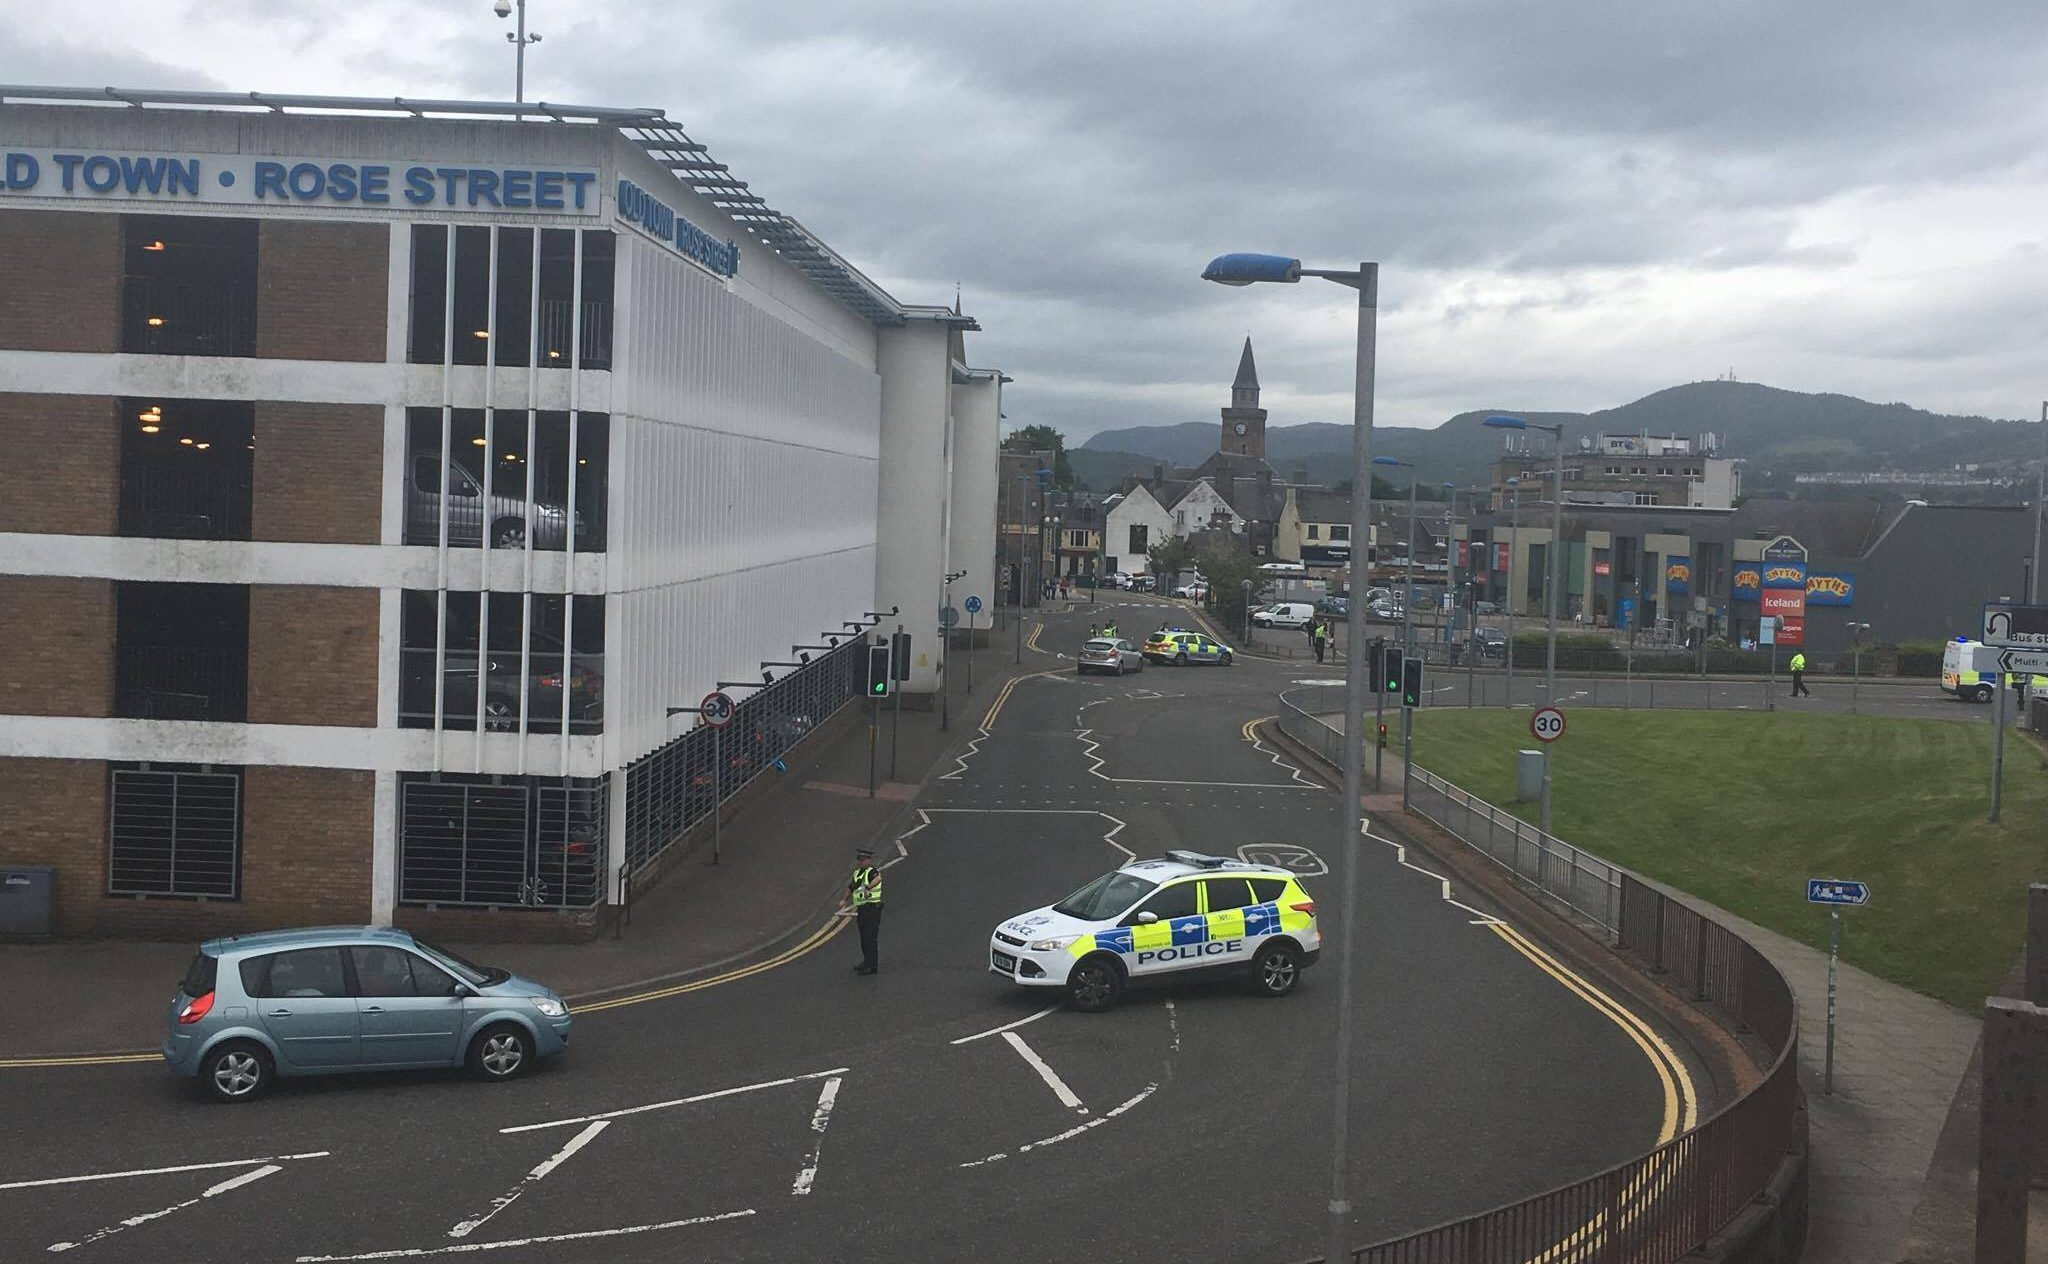 The scene of the incident in Inverness